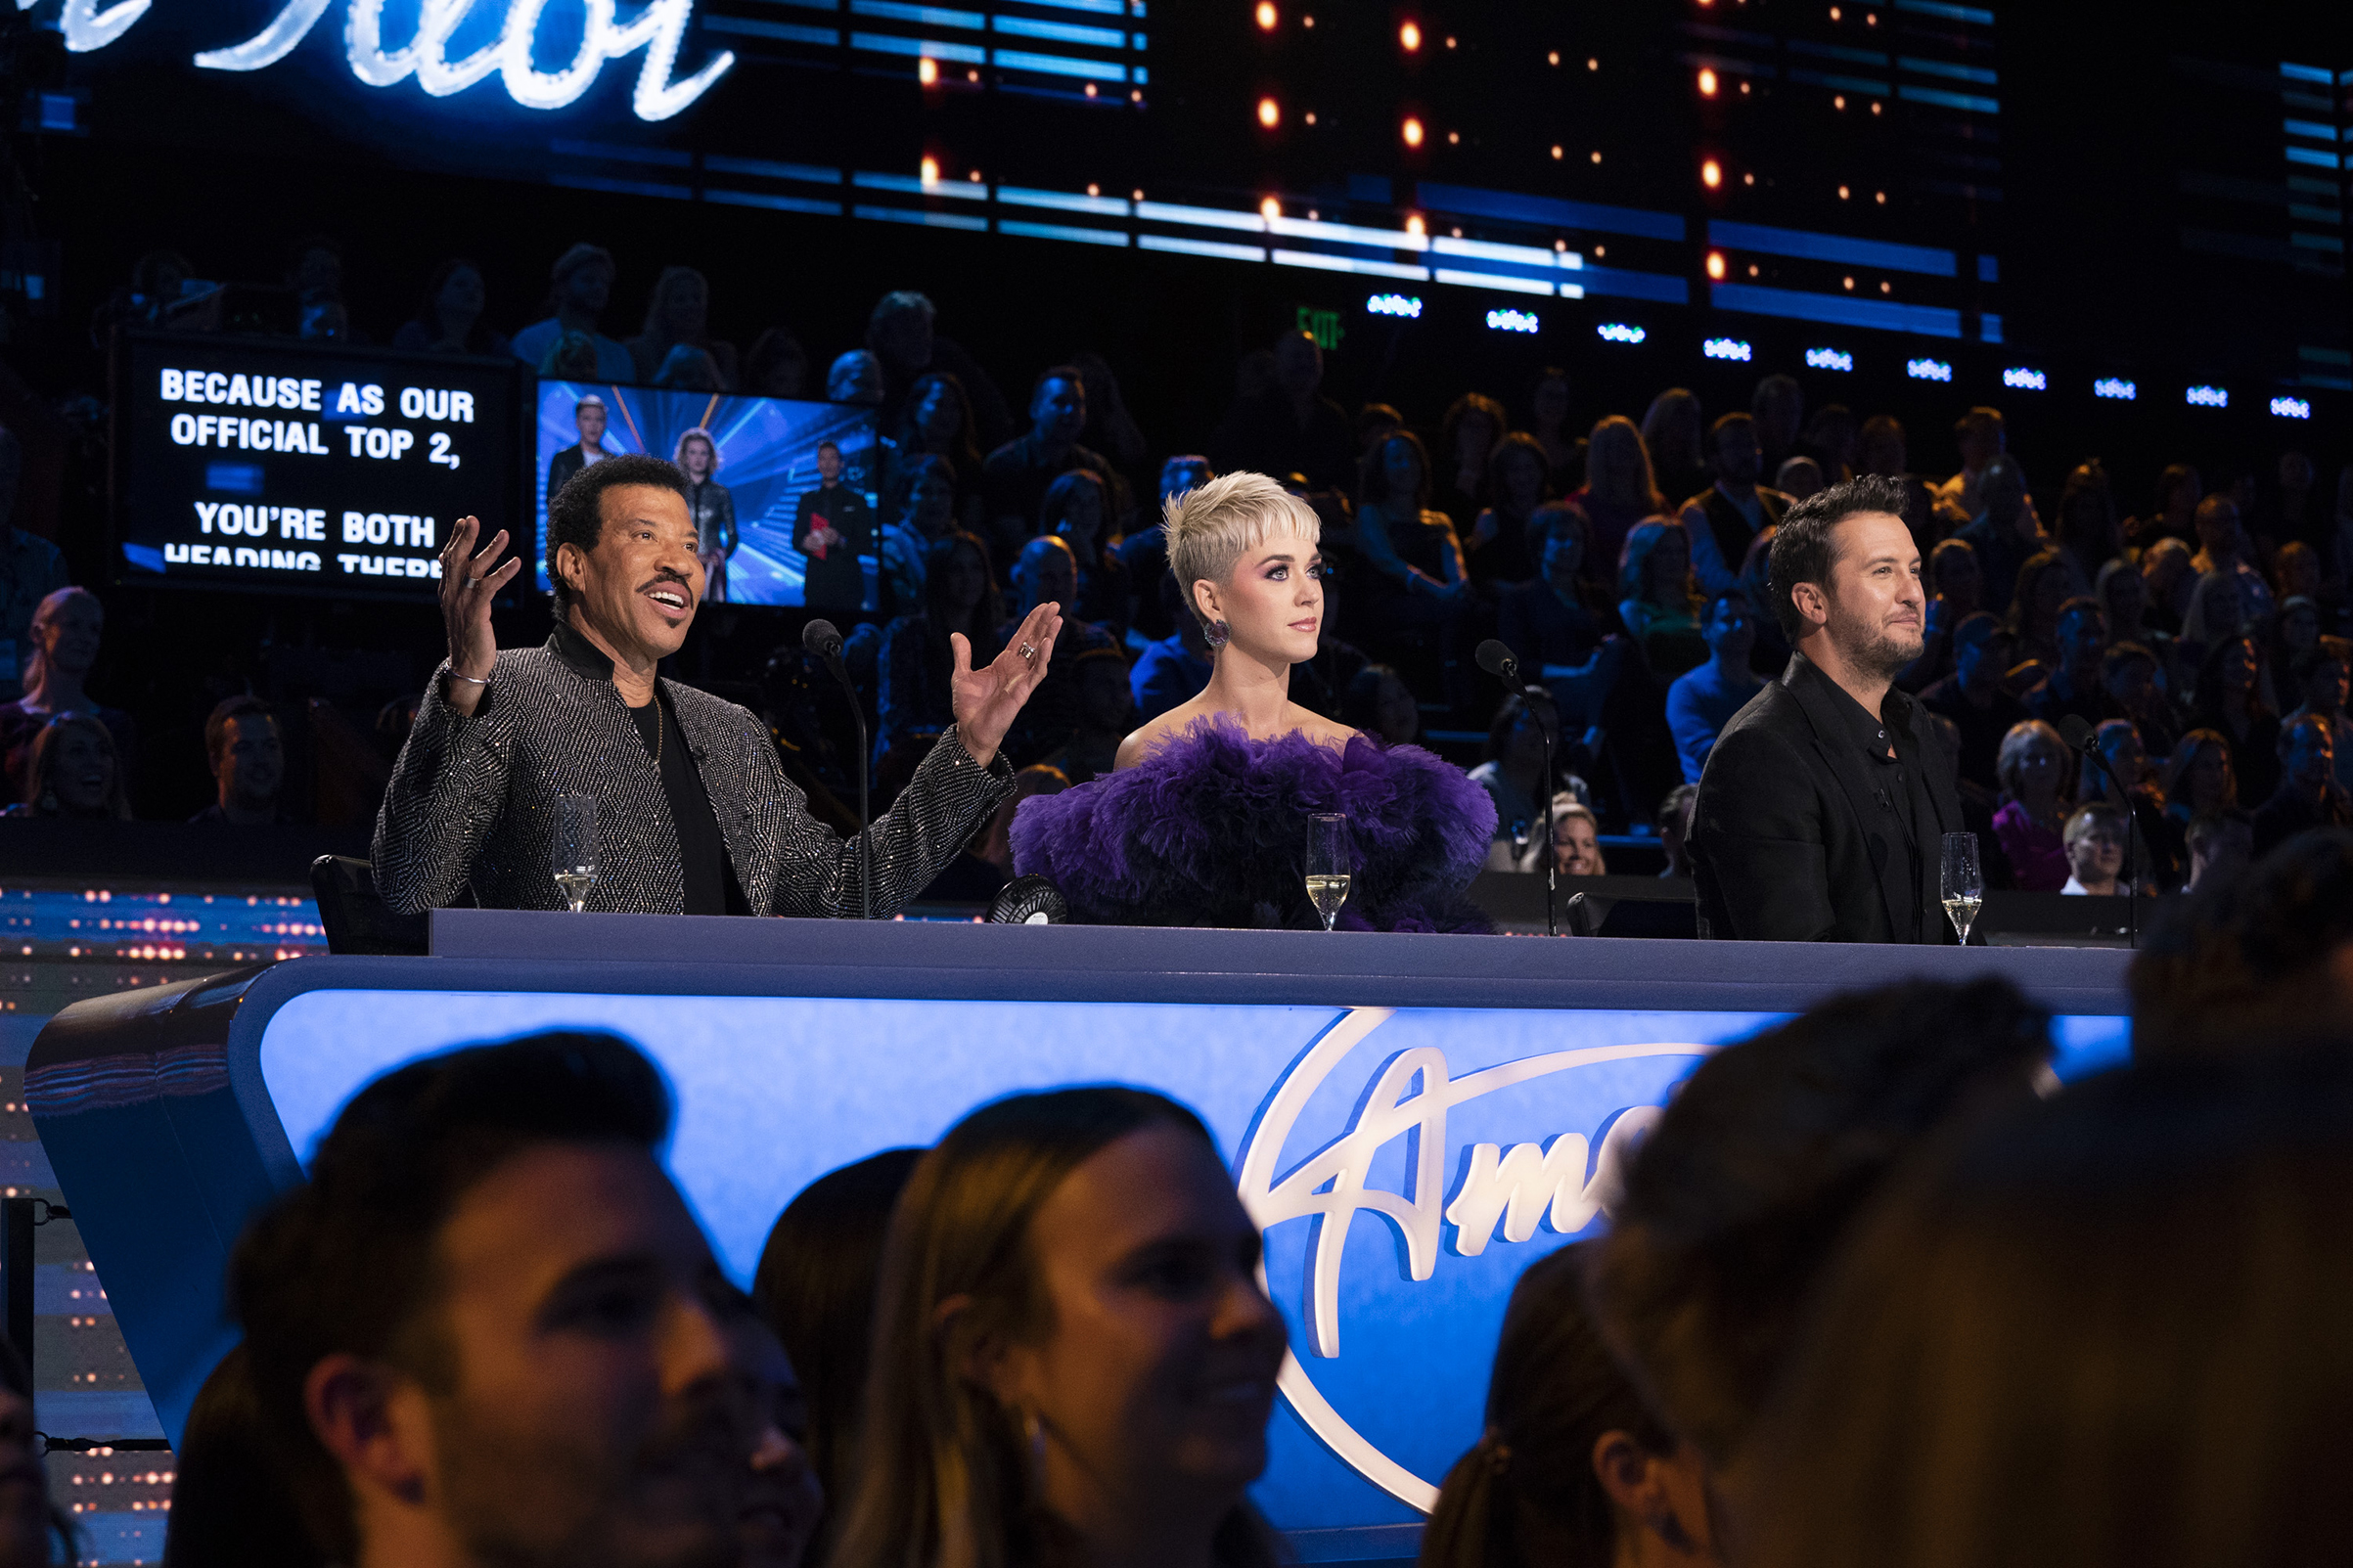 'American Idol' Judges Lionel Ritchie, Katy Perry and Luke Bryan